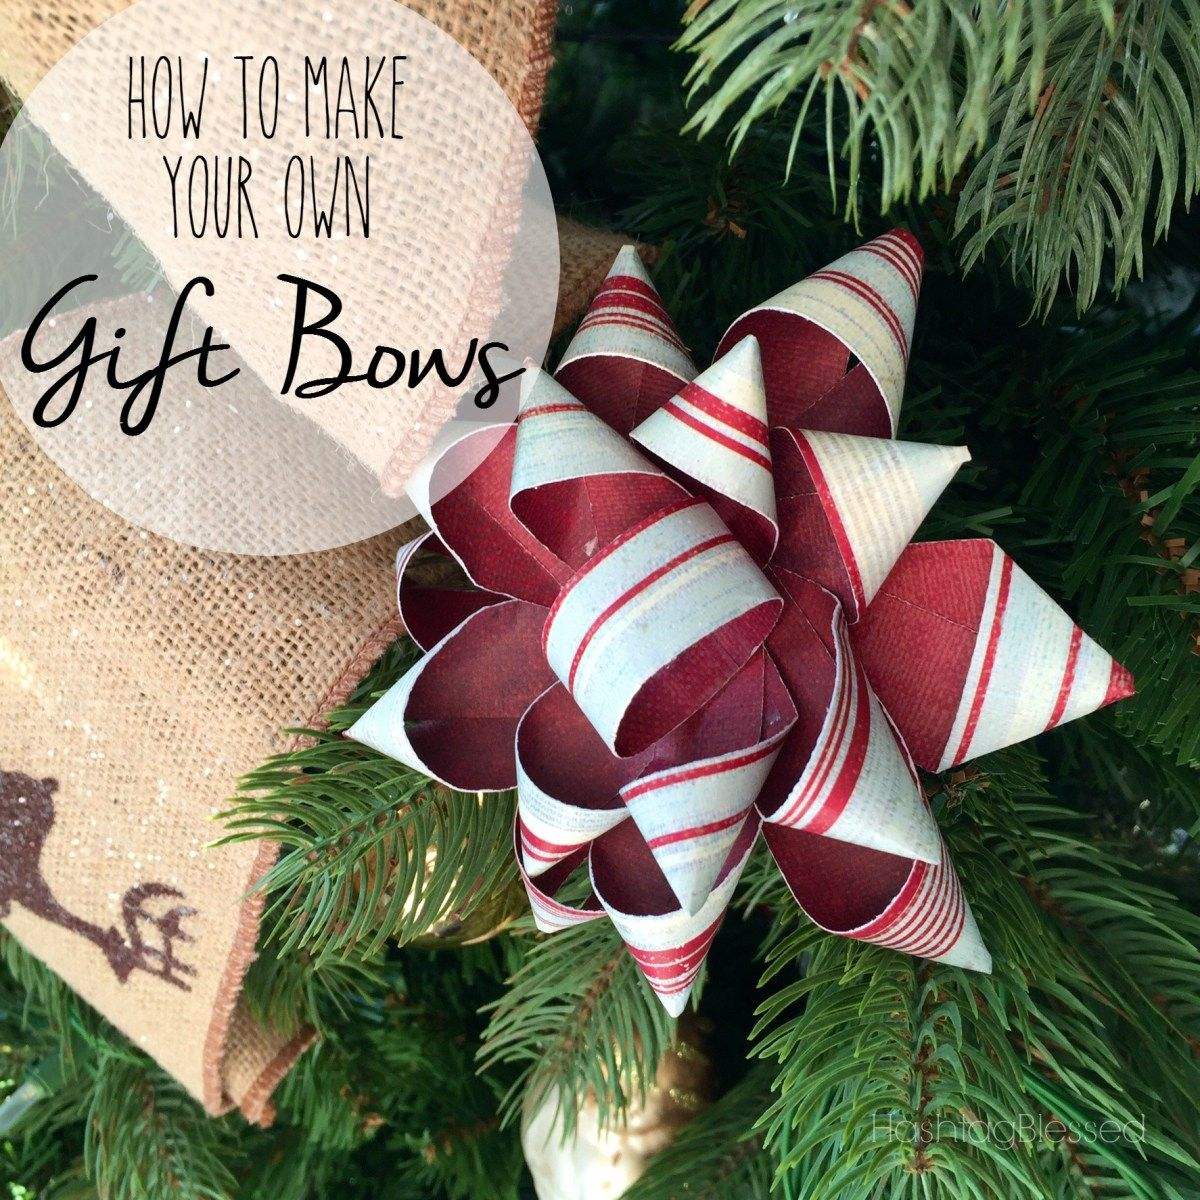 making your own gift bows